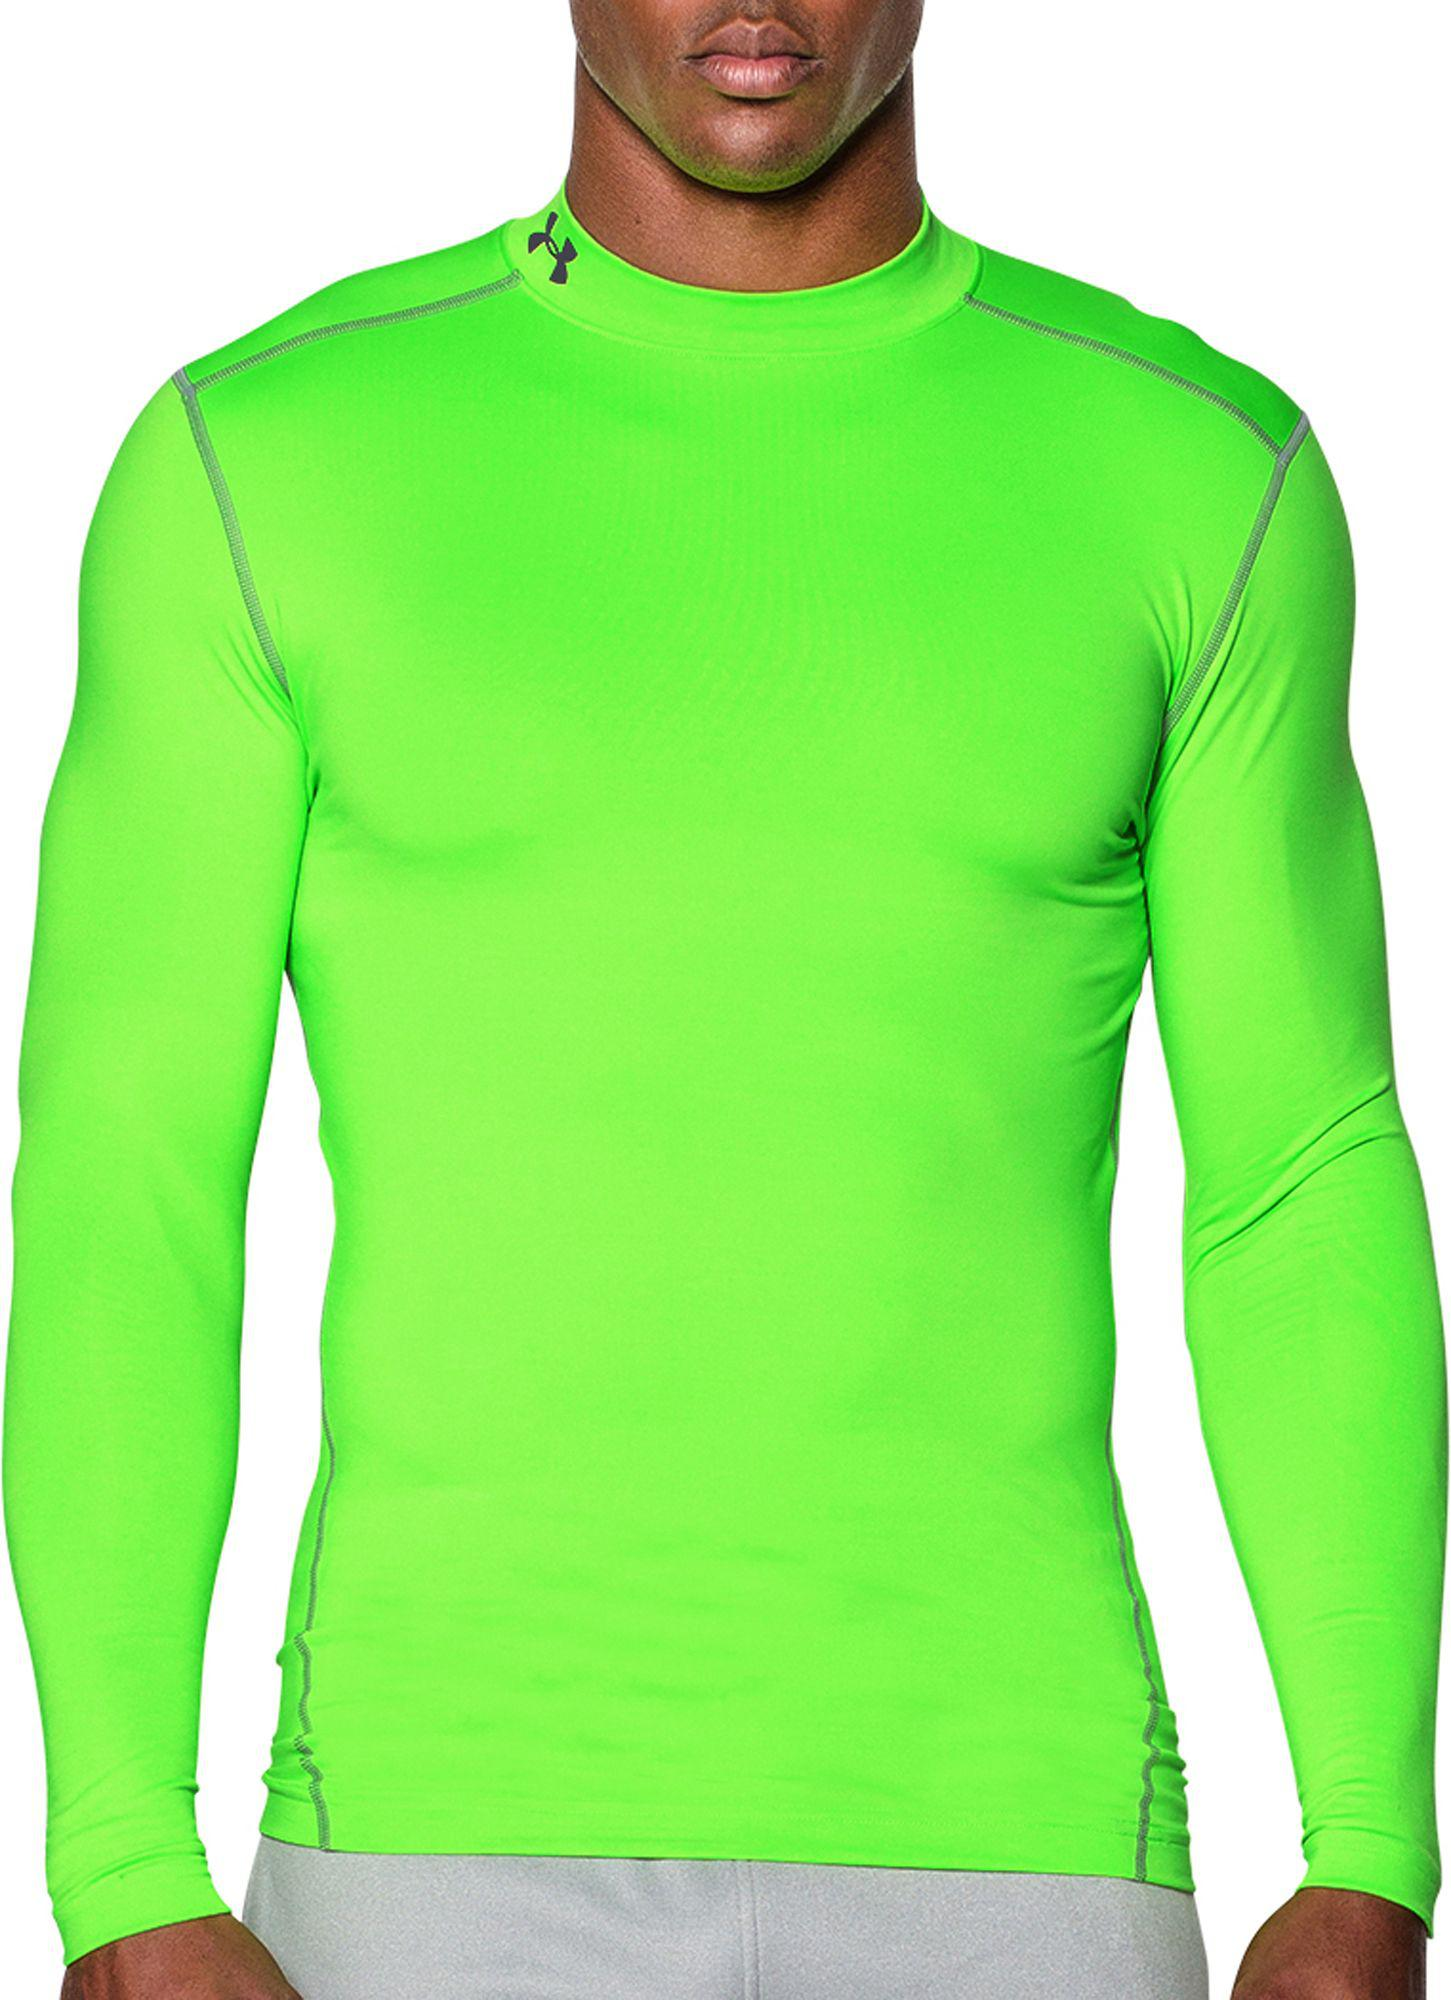 Under Armour - Green Coldgear Armour Compression Mock Neck Long Sleeve Shirt  for Men - Lyst 3d7239080a86